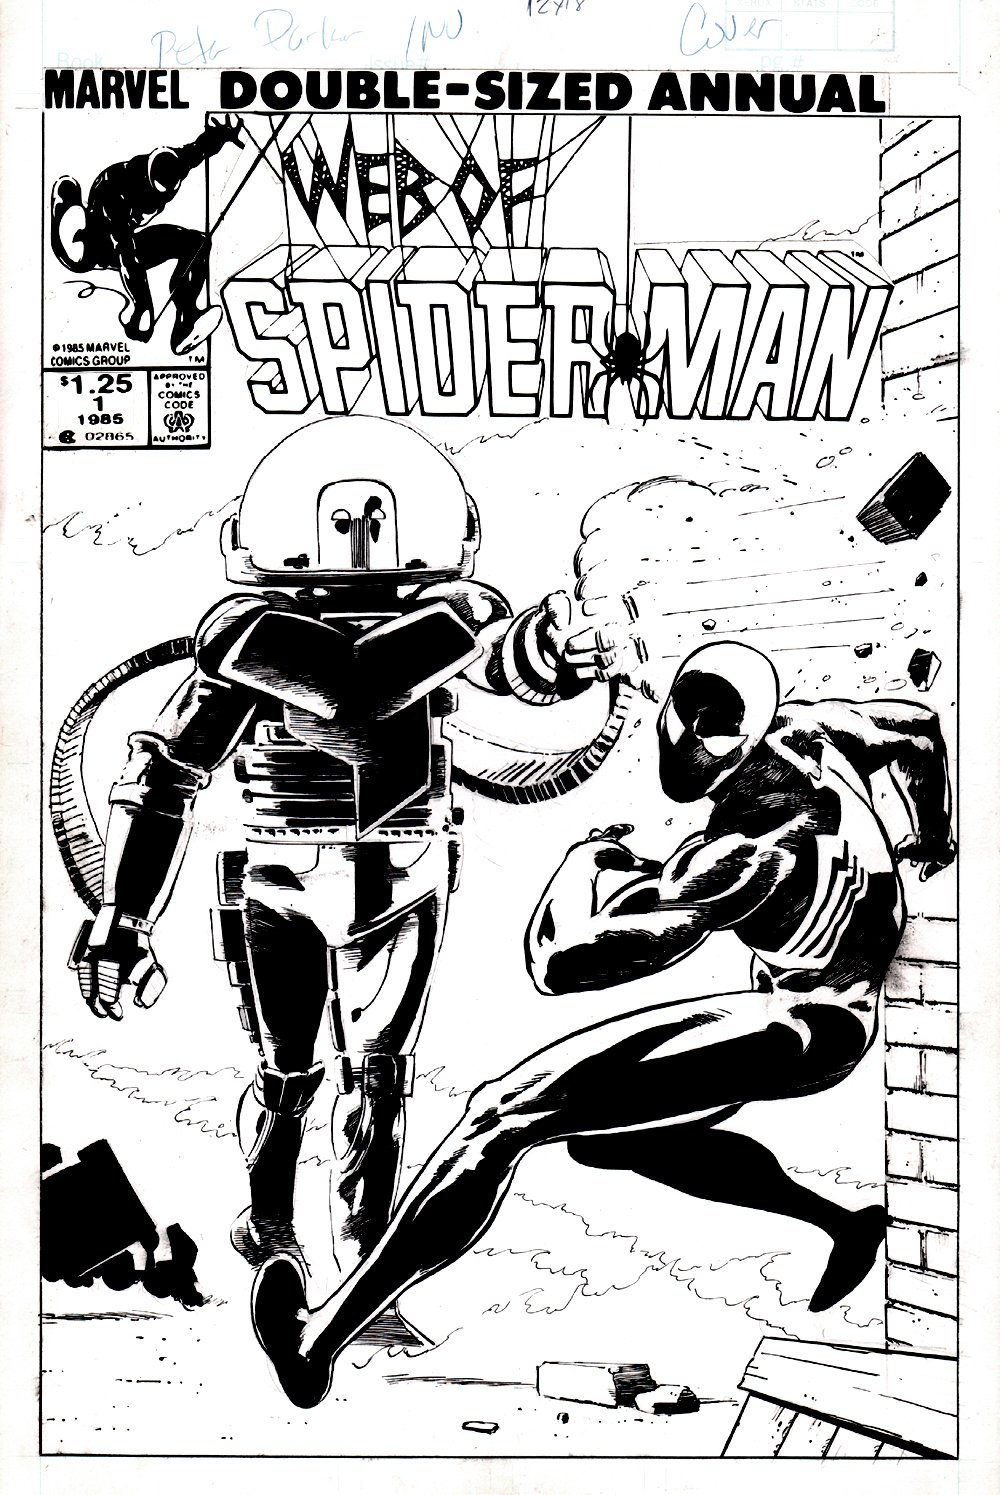 Web of Spider-Man Annual #1 Unpublished Cover (VERY EARLY BLACK SPIDER-MAN COVER!) 1985